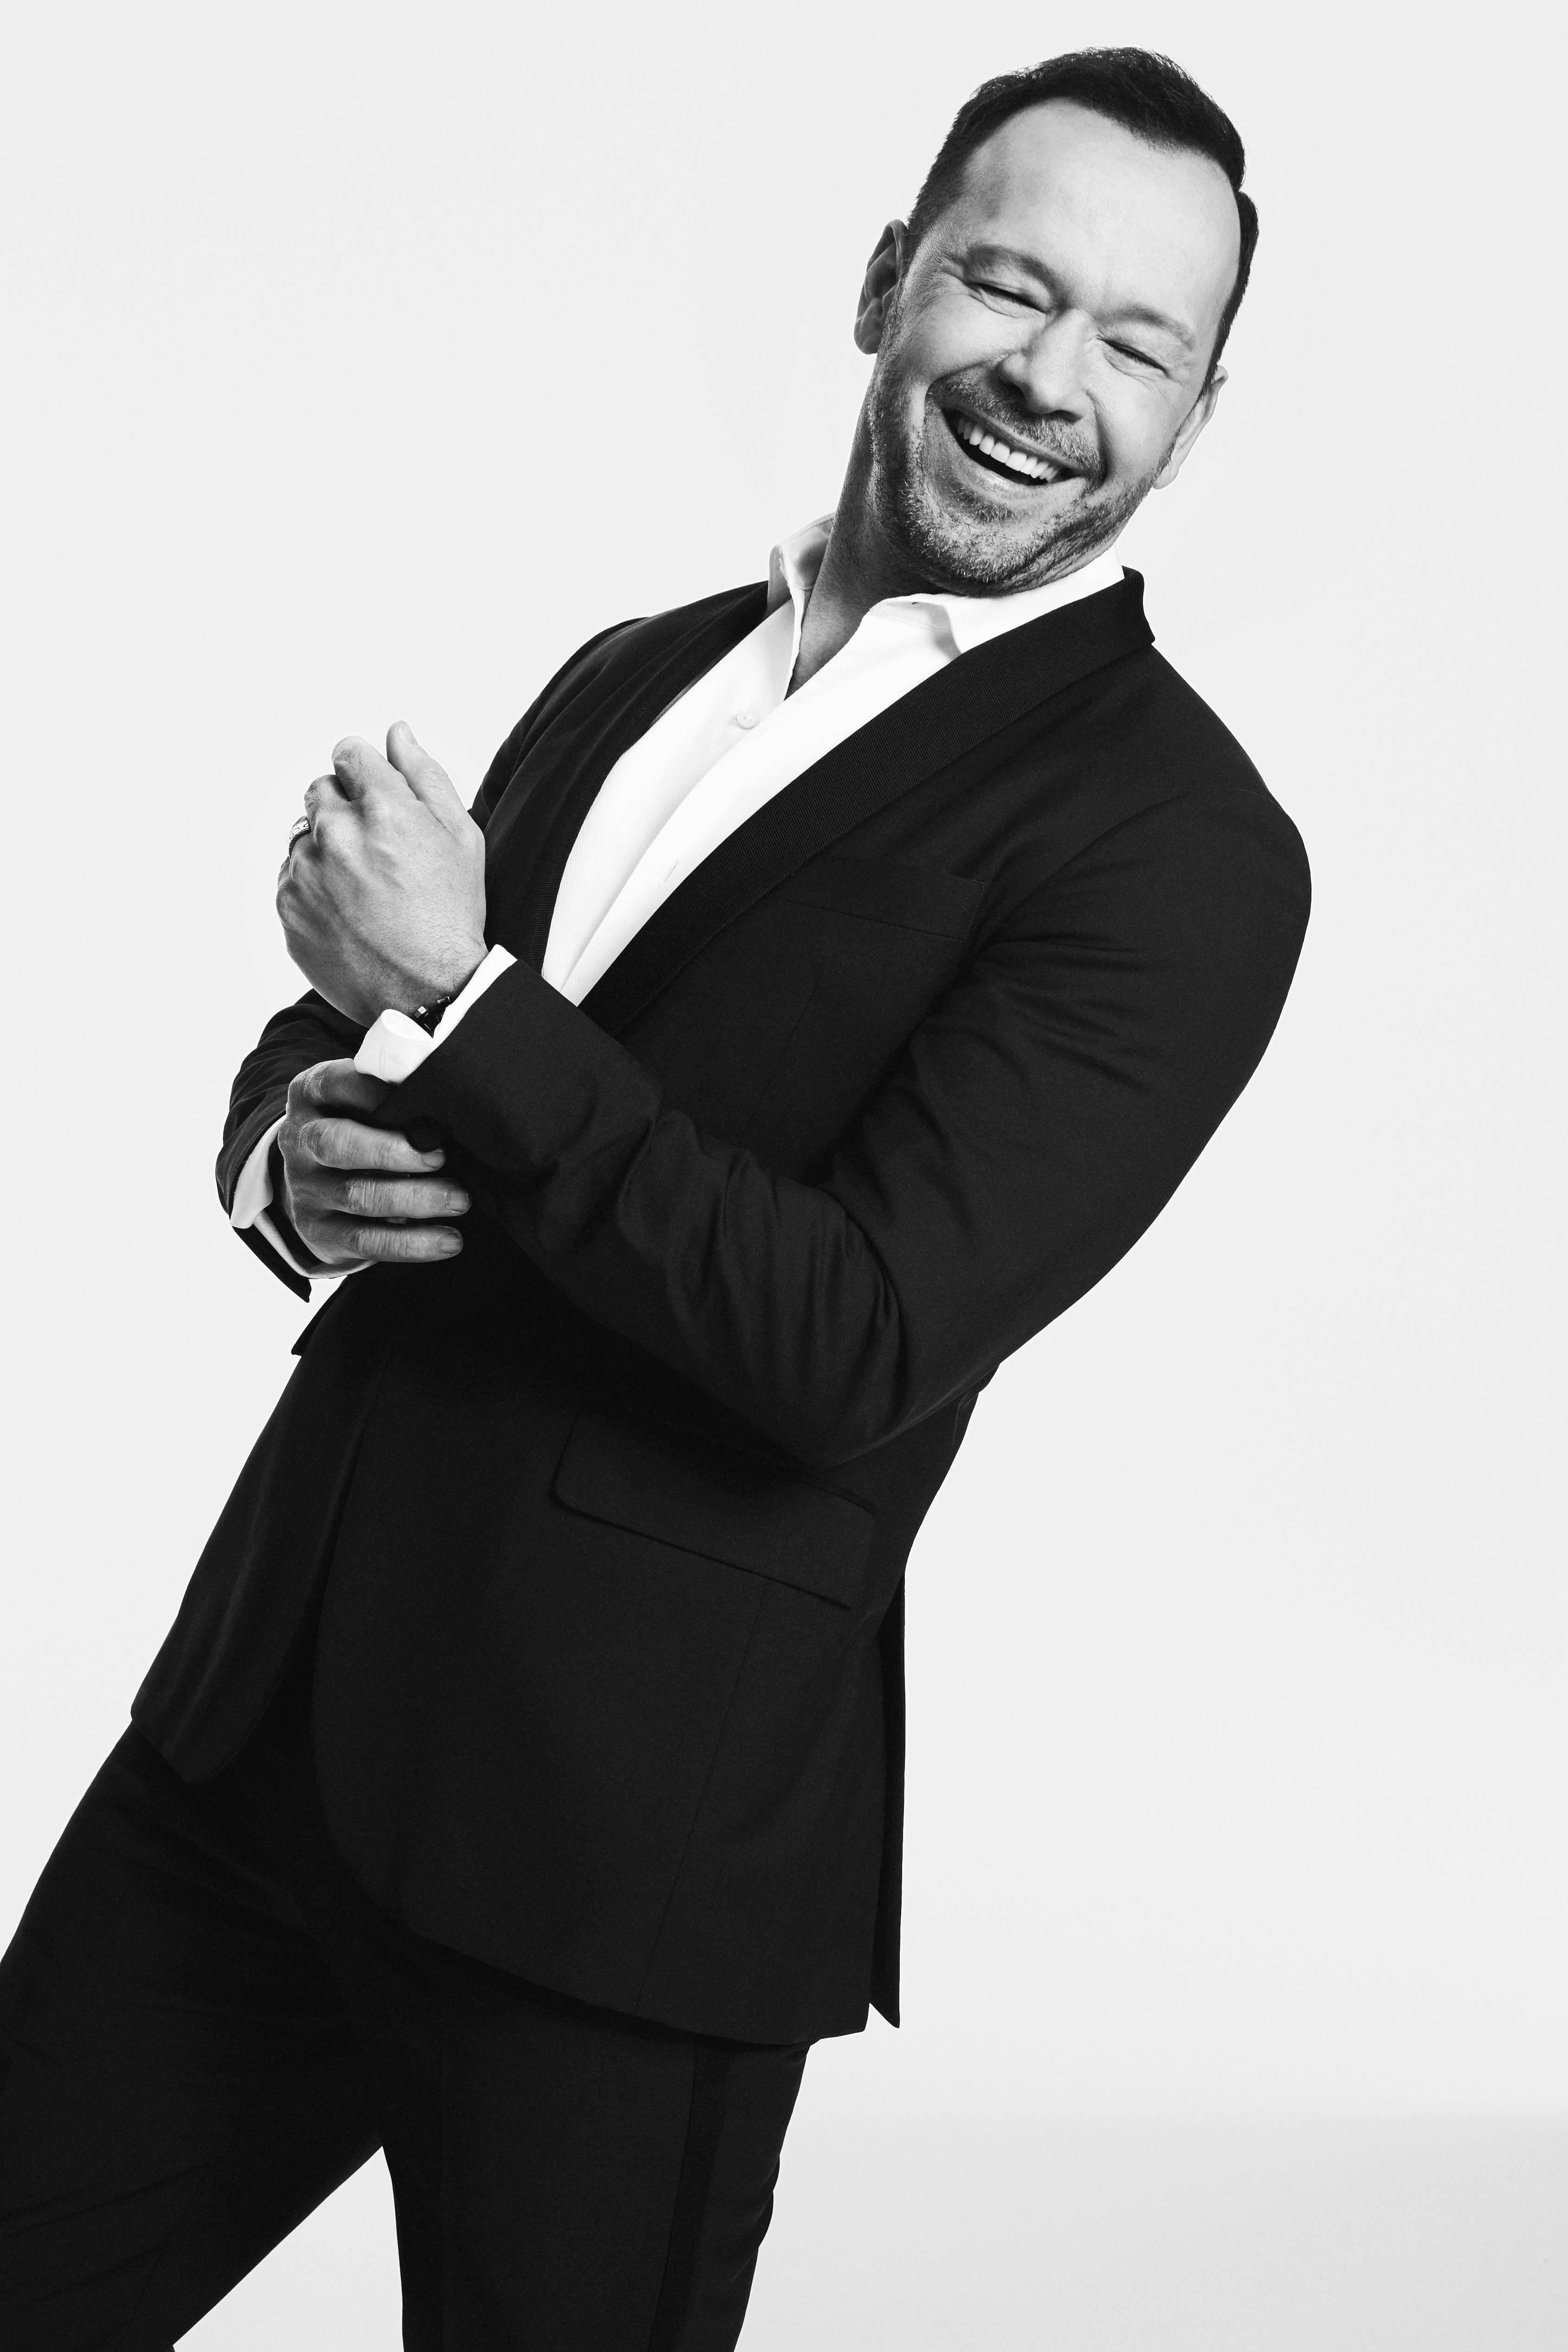 Donnie Wahlberg in a tuxedo.